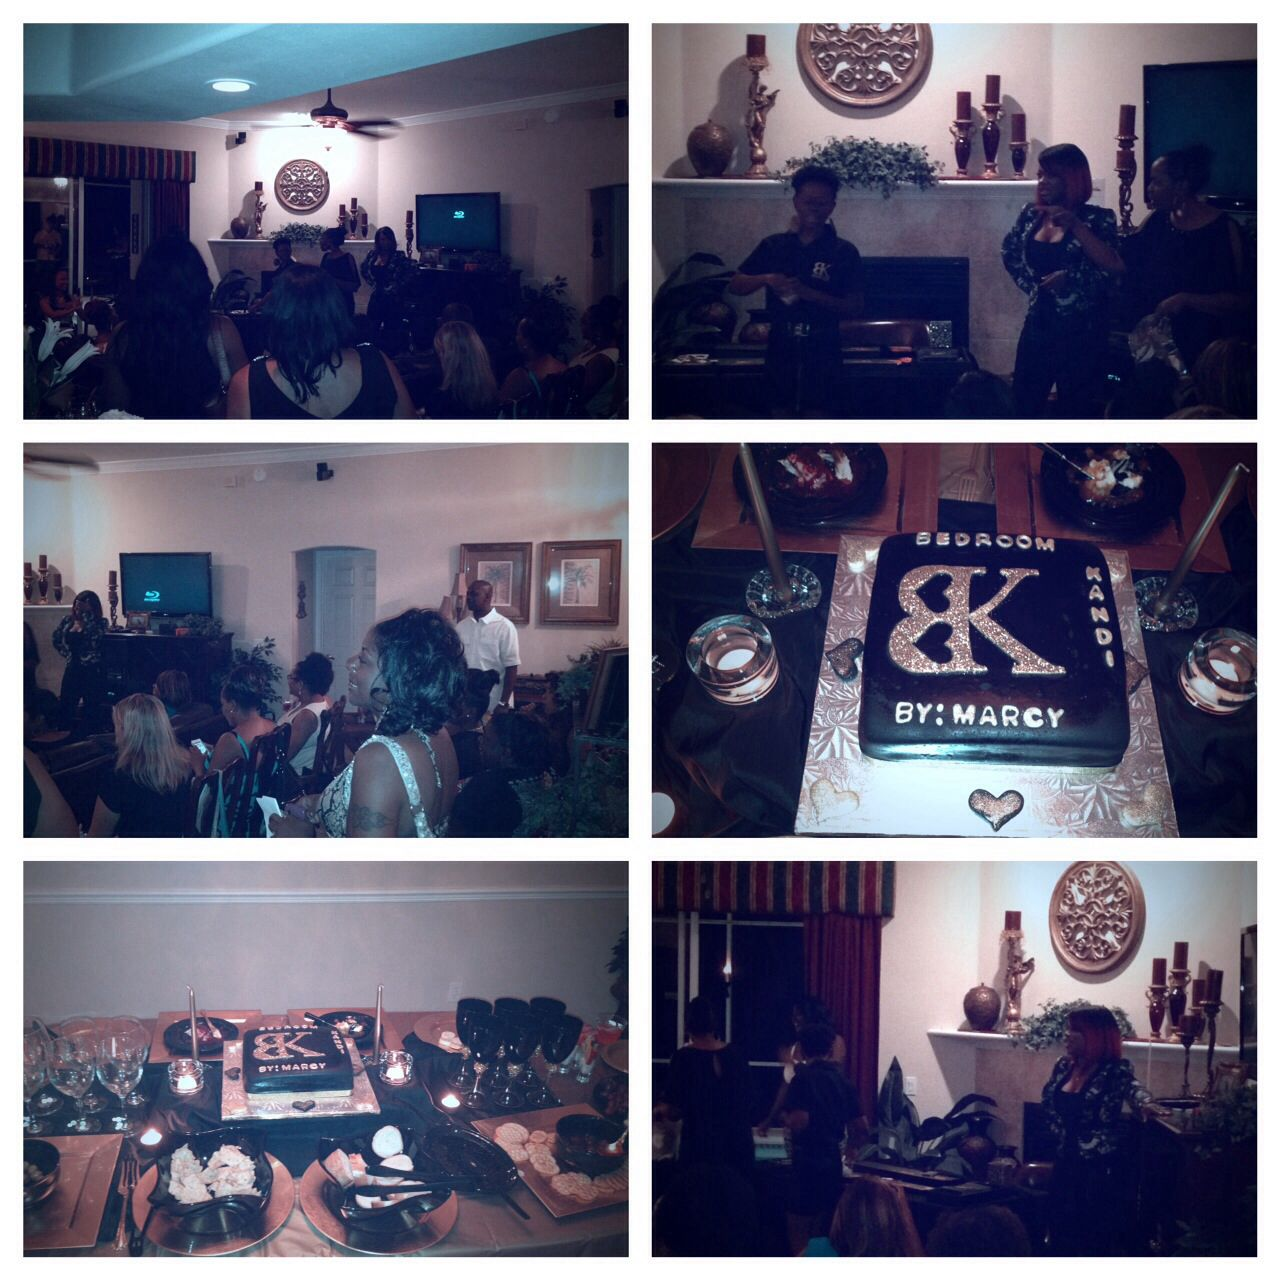 Bedroom Kandi Boutique Party: Top Picture Of Bedroom Kandi Boutique Parties